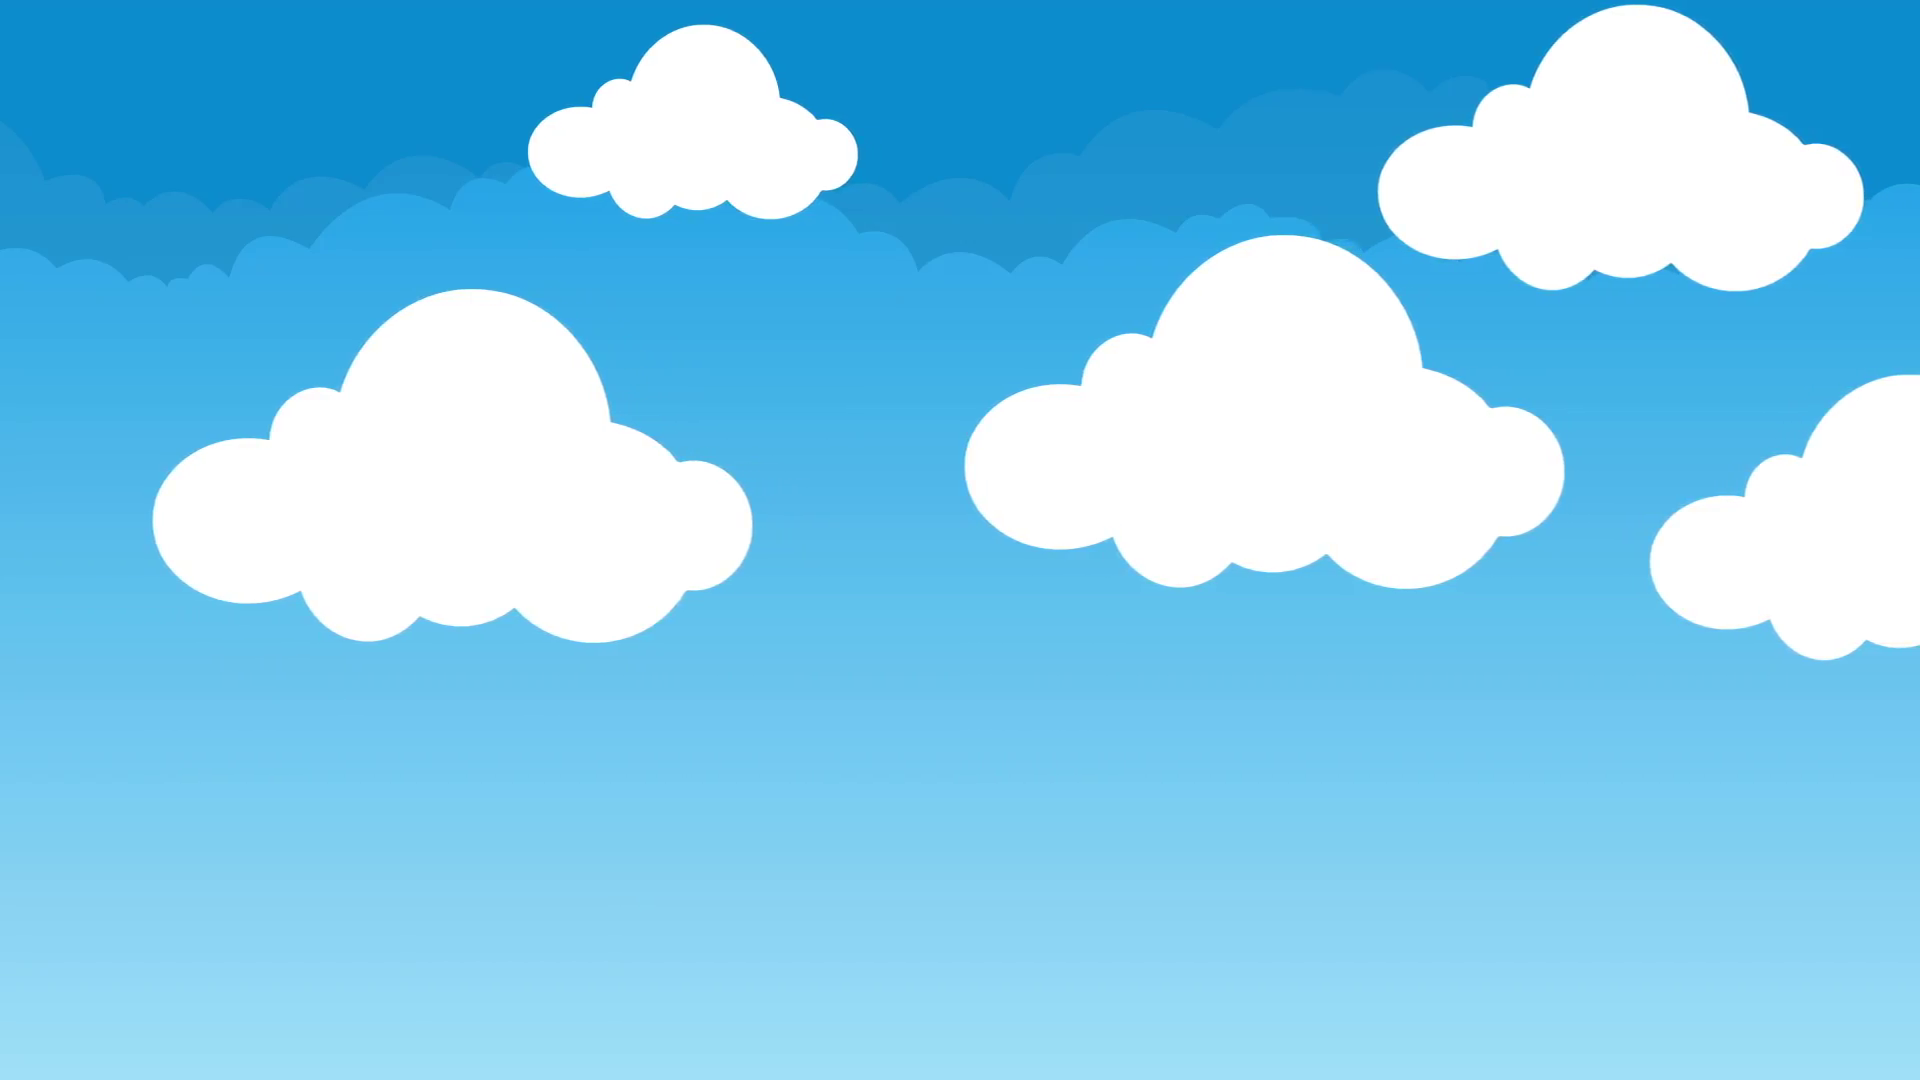 Cute and Puffy Cartoon Clouds Hovering in a Beautiful Blue Sky Motion  Background.